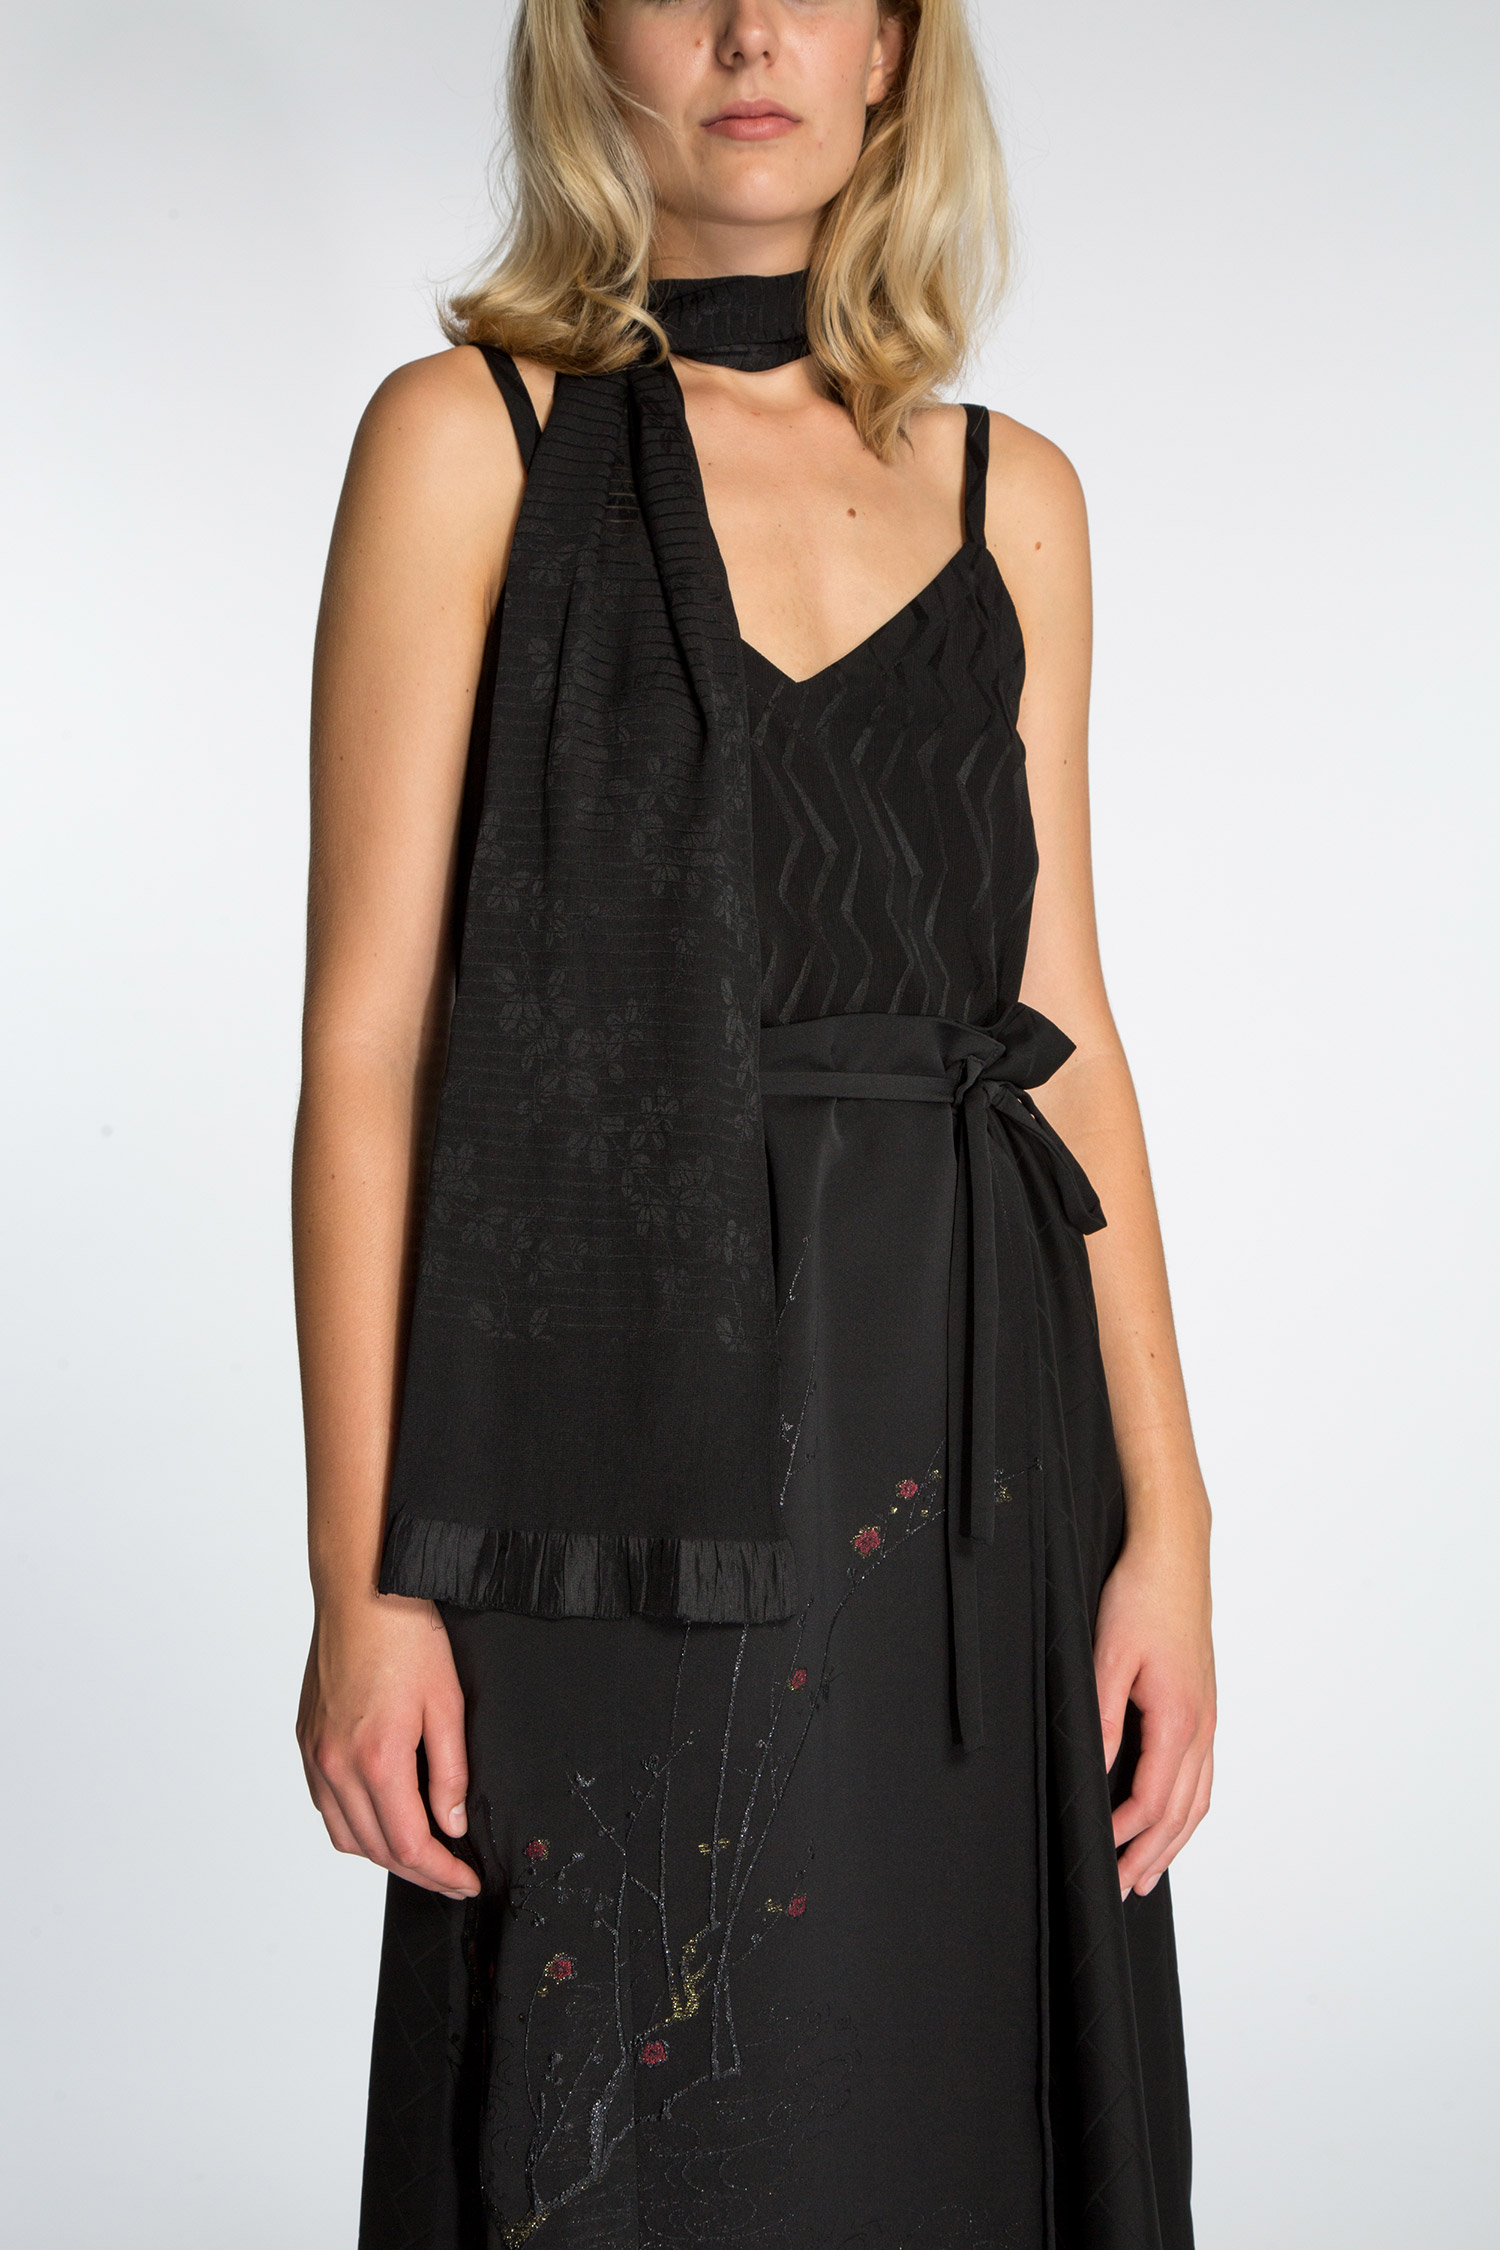 Look5-camisole-wrap-skirt-8-46.jpg